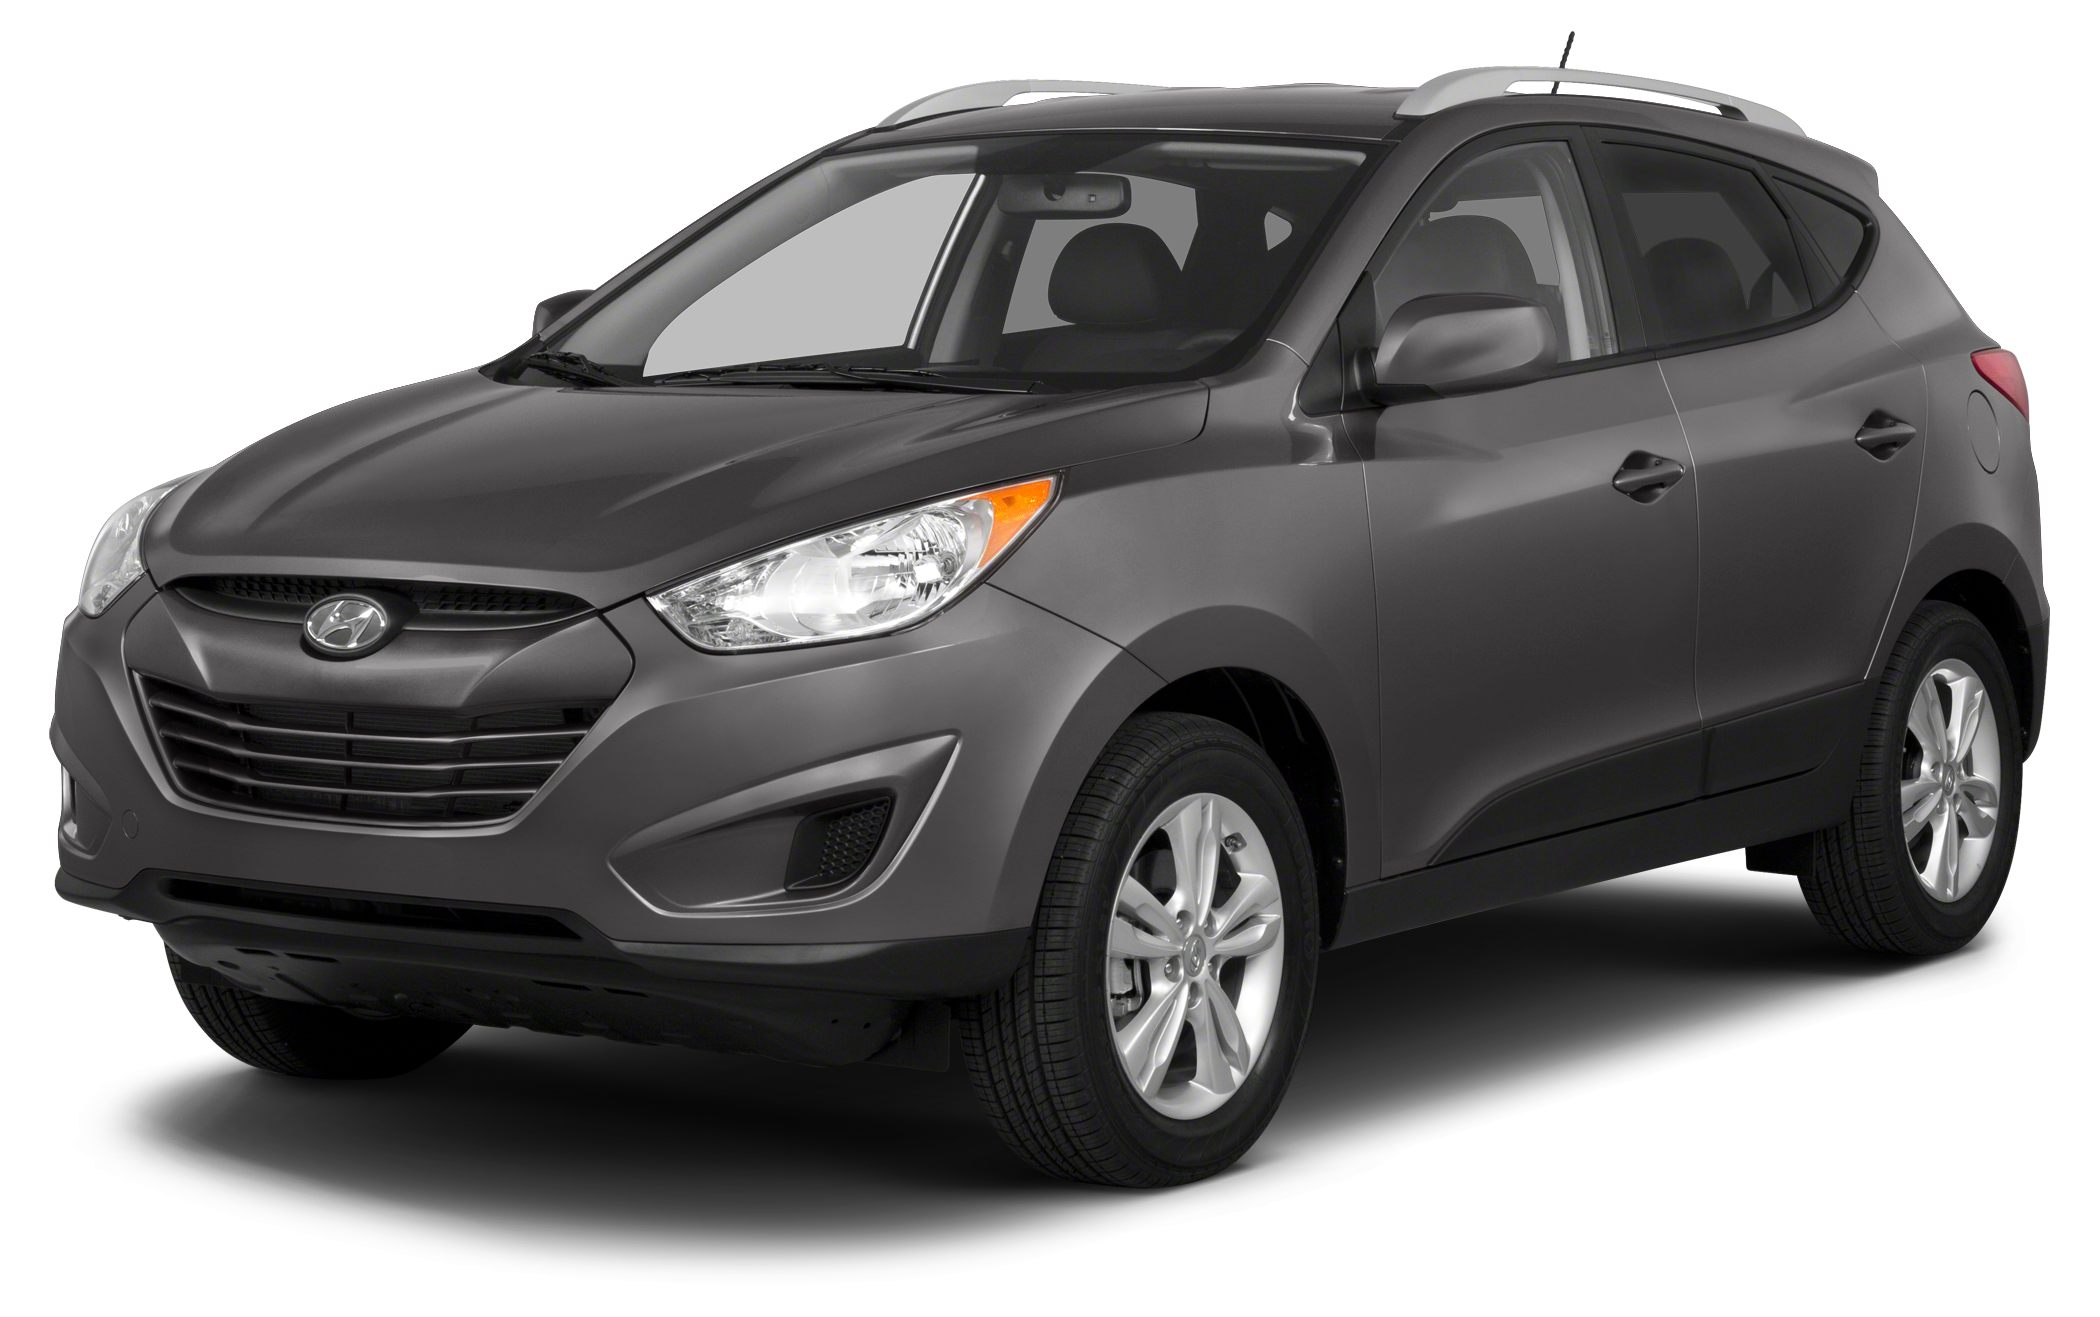 2013 Hyundai Tucson GLS Grab a steal on this 2013 Hyundai Tucson while we have it Comfortable but